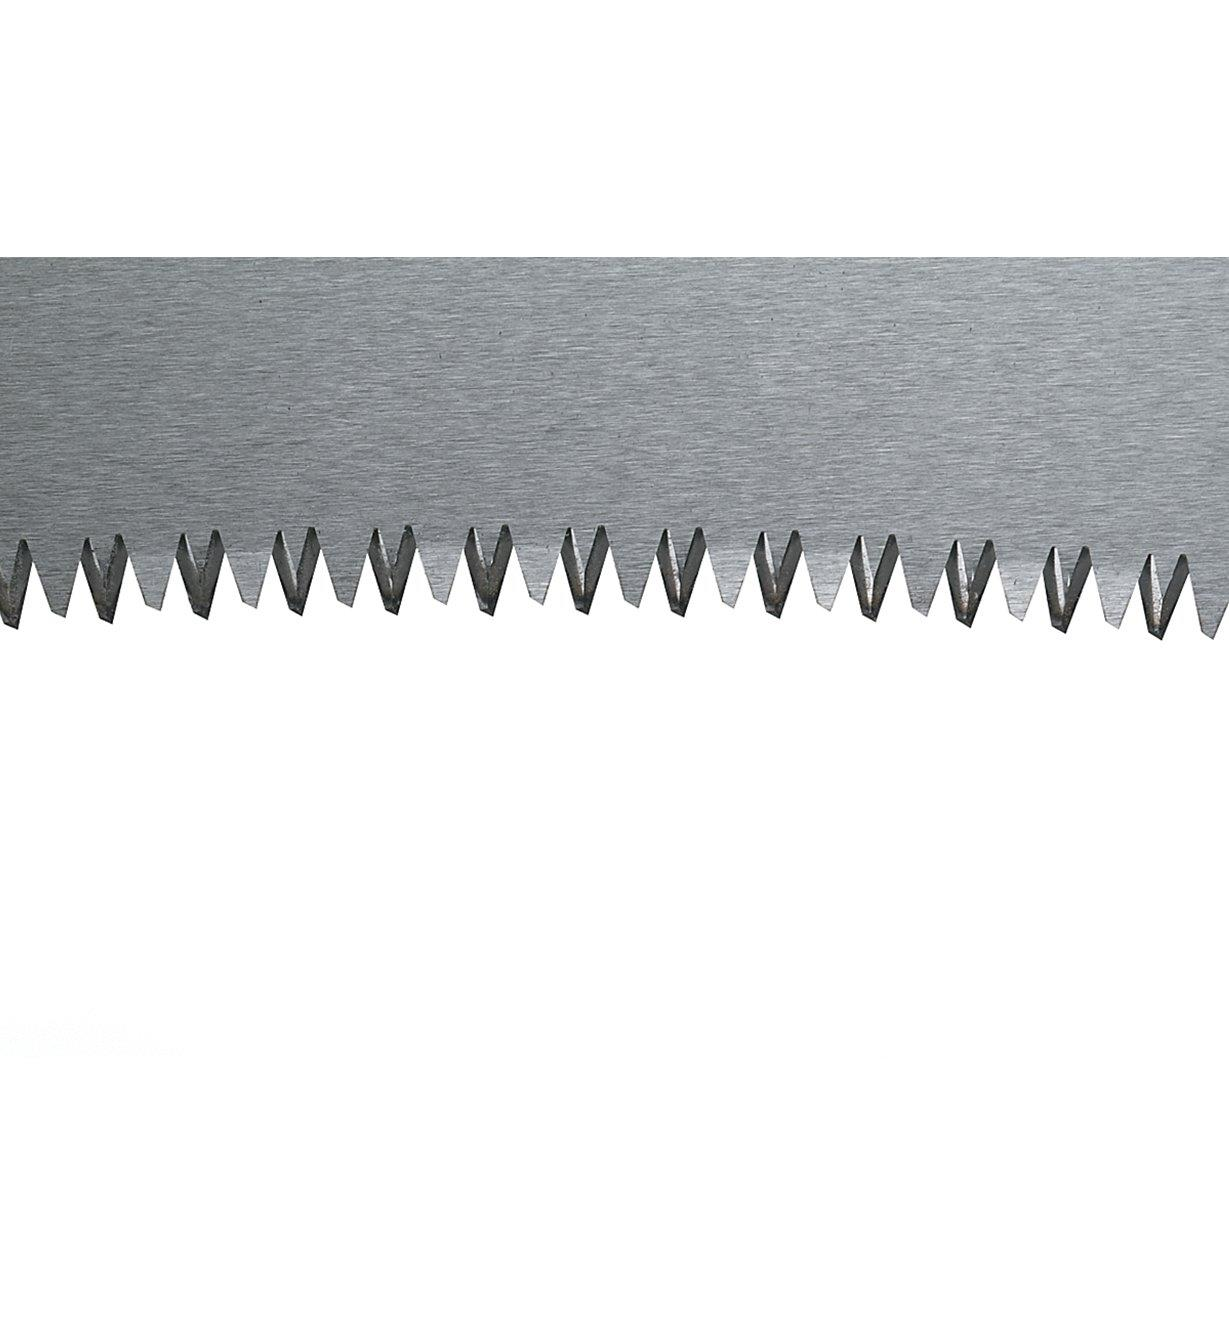 09A0356 - Pruning Saw Blade only